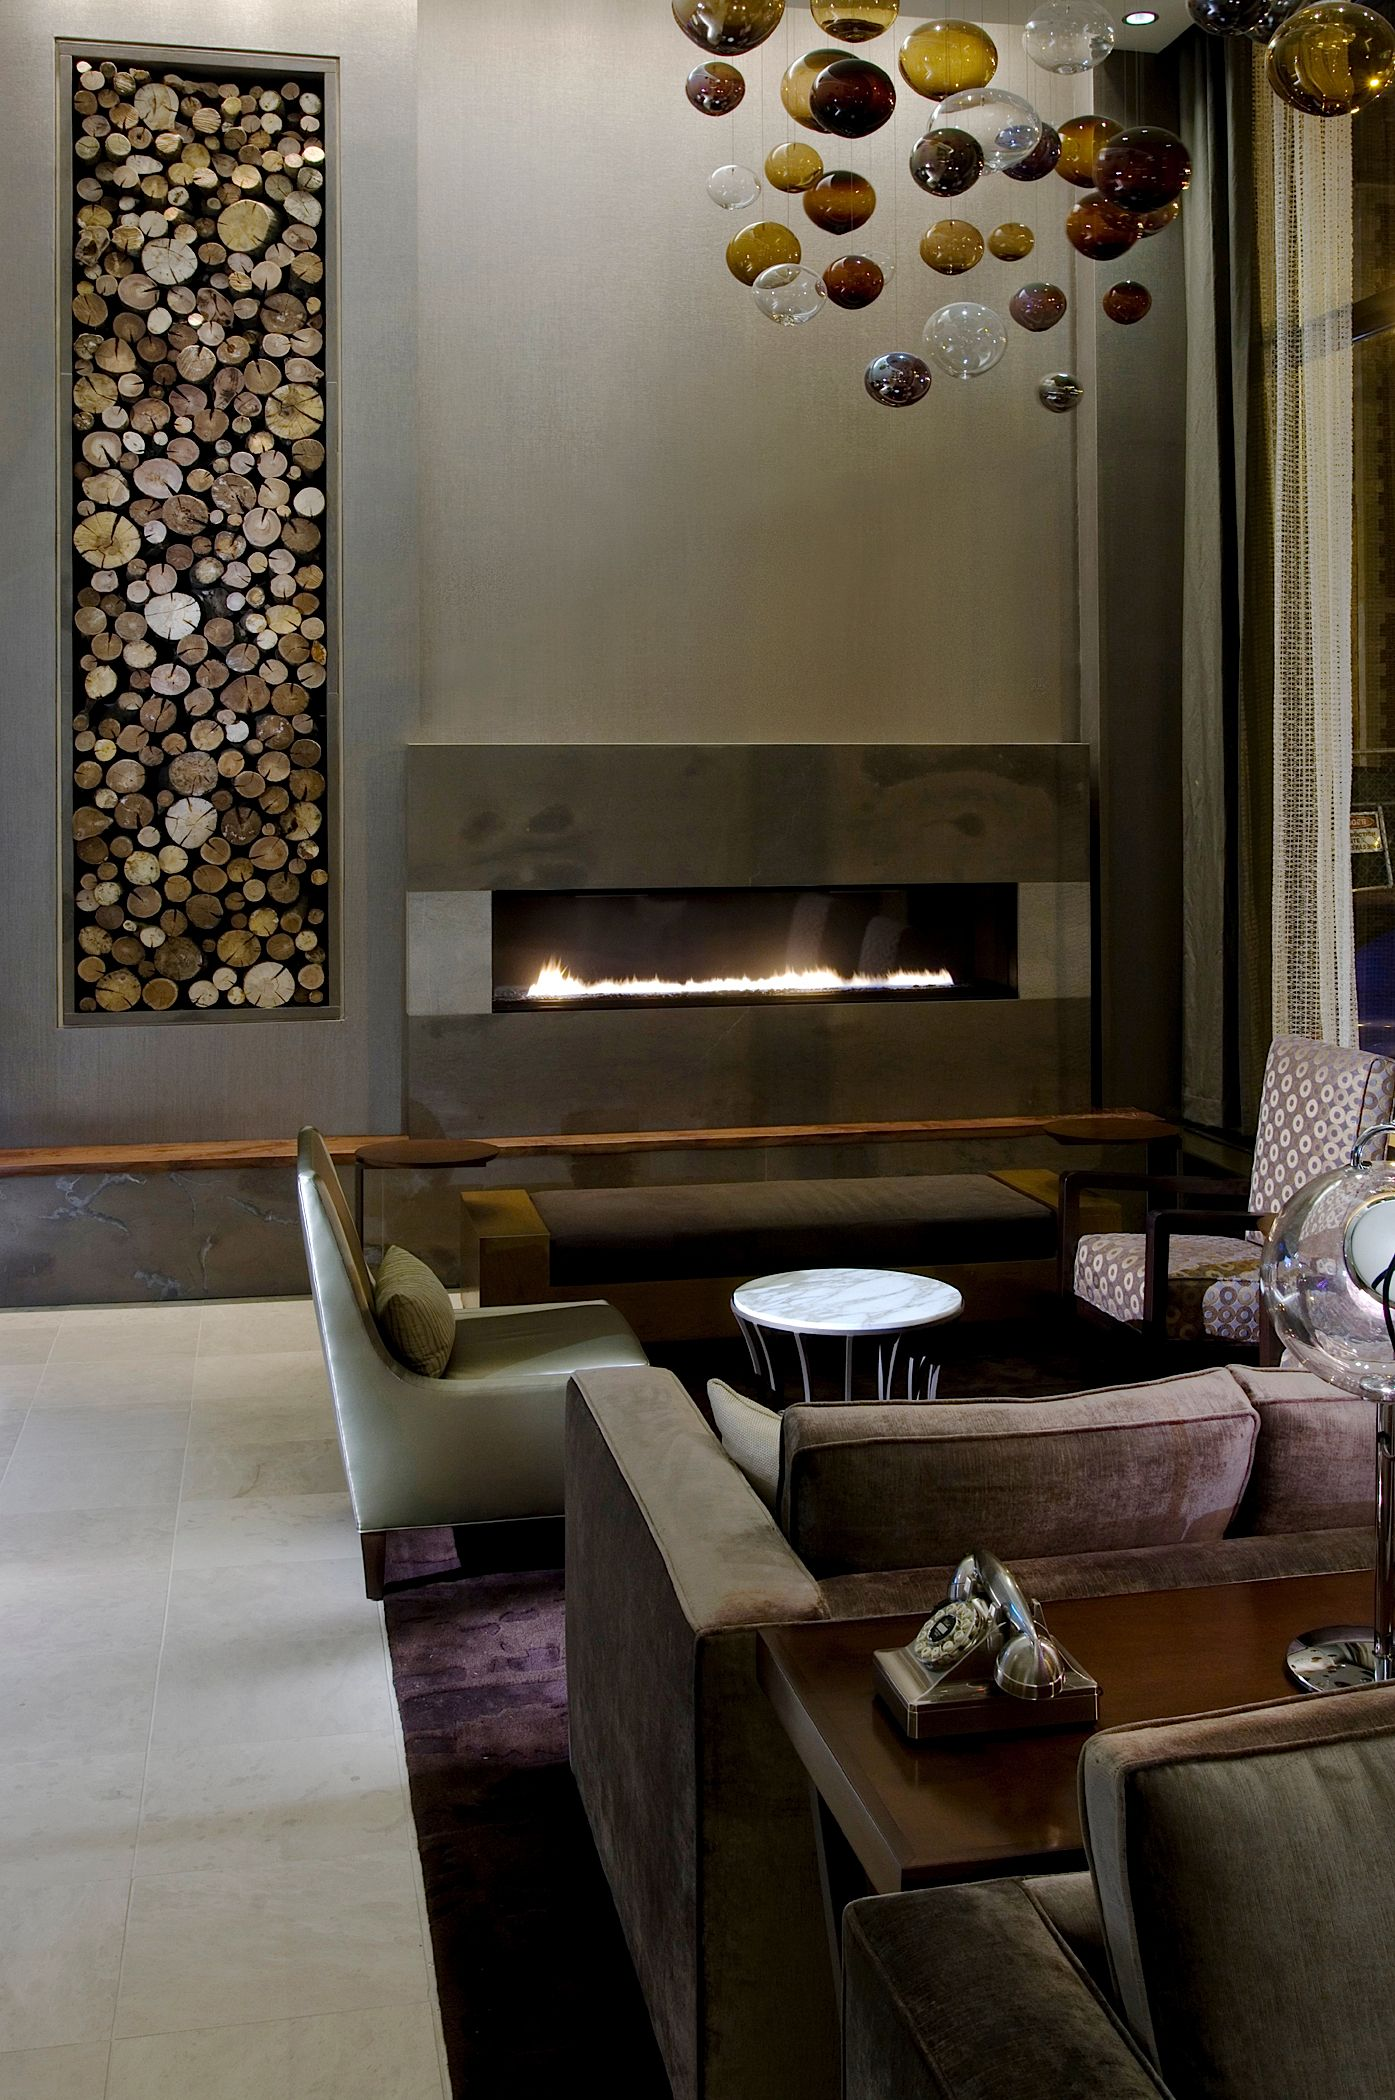 Nyc Loft Room Entertainment Wall Ideas With Fireplace Interior Design: Lobby Fireplace At Chicago's Premiere Boutique Hotel